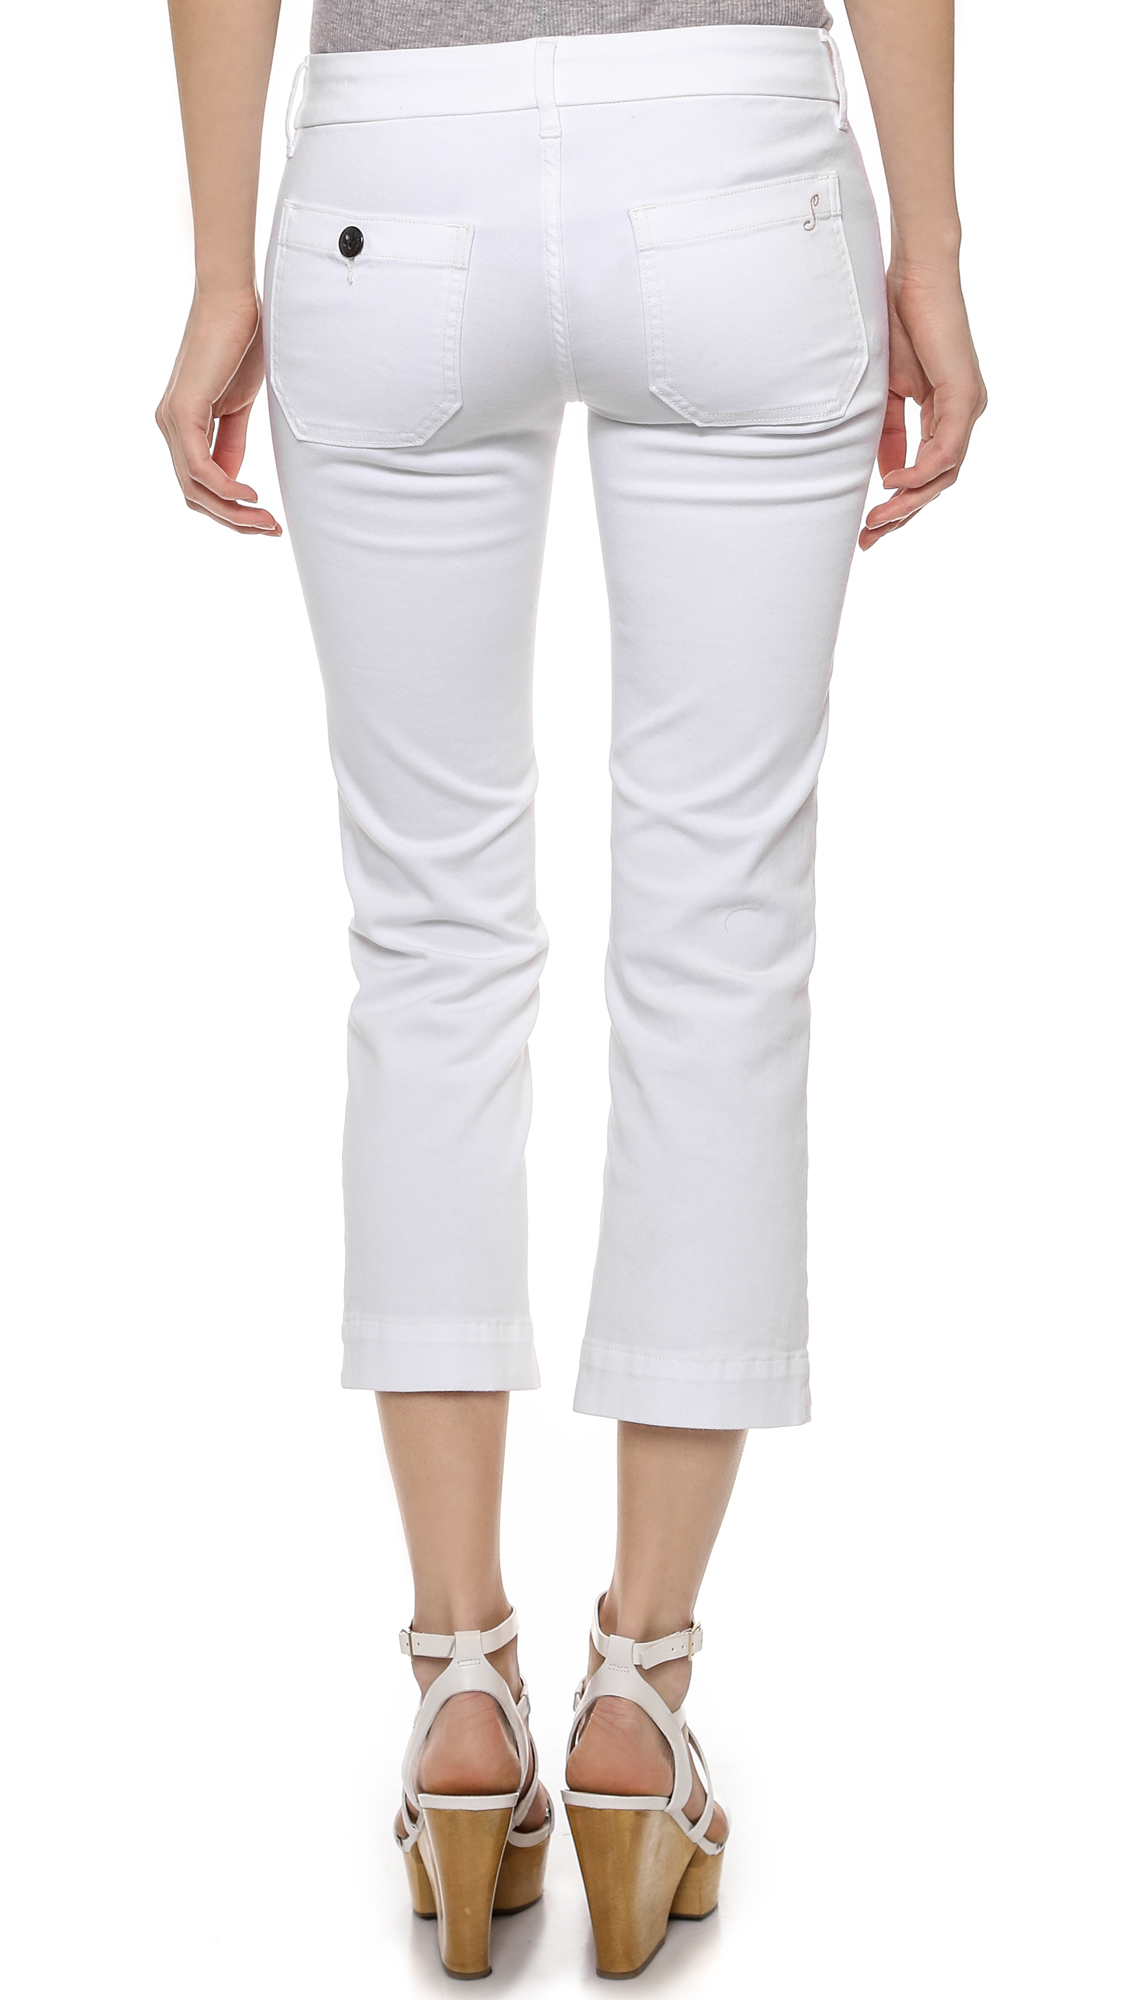 The Seafarer Denim Lord Jim New Cropped Jeans - White